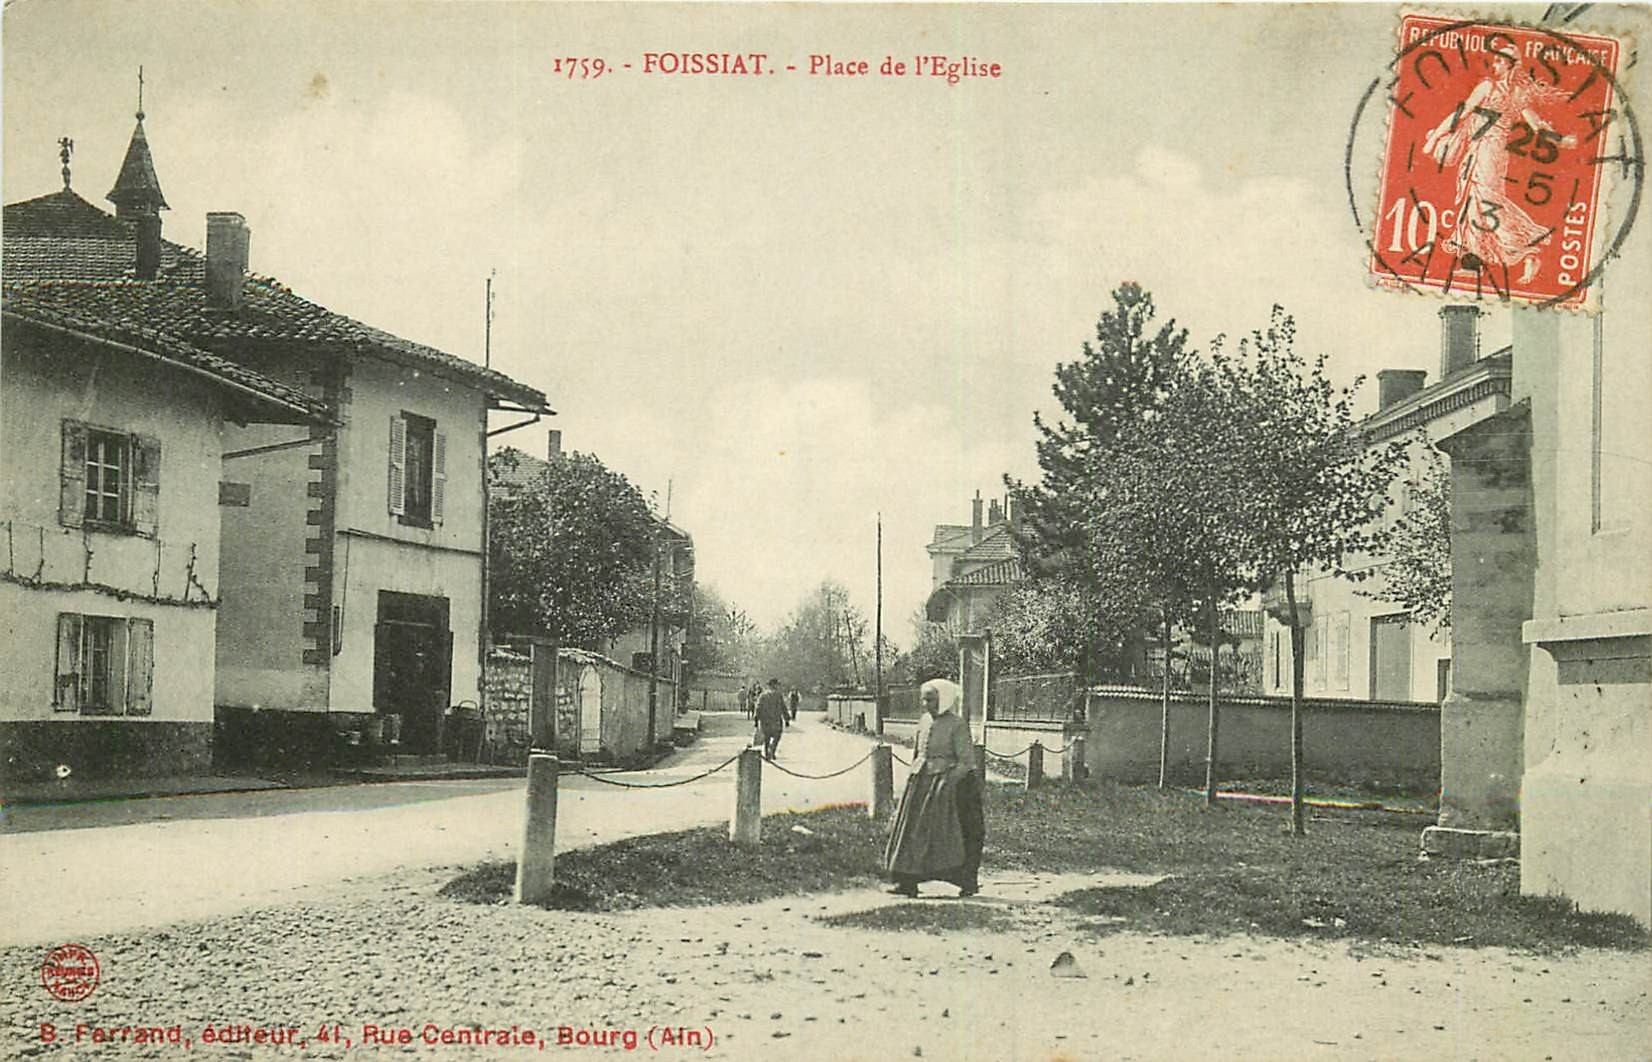 WW 01 FOISSIAT. Place de l'Eglise 1913